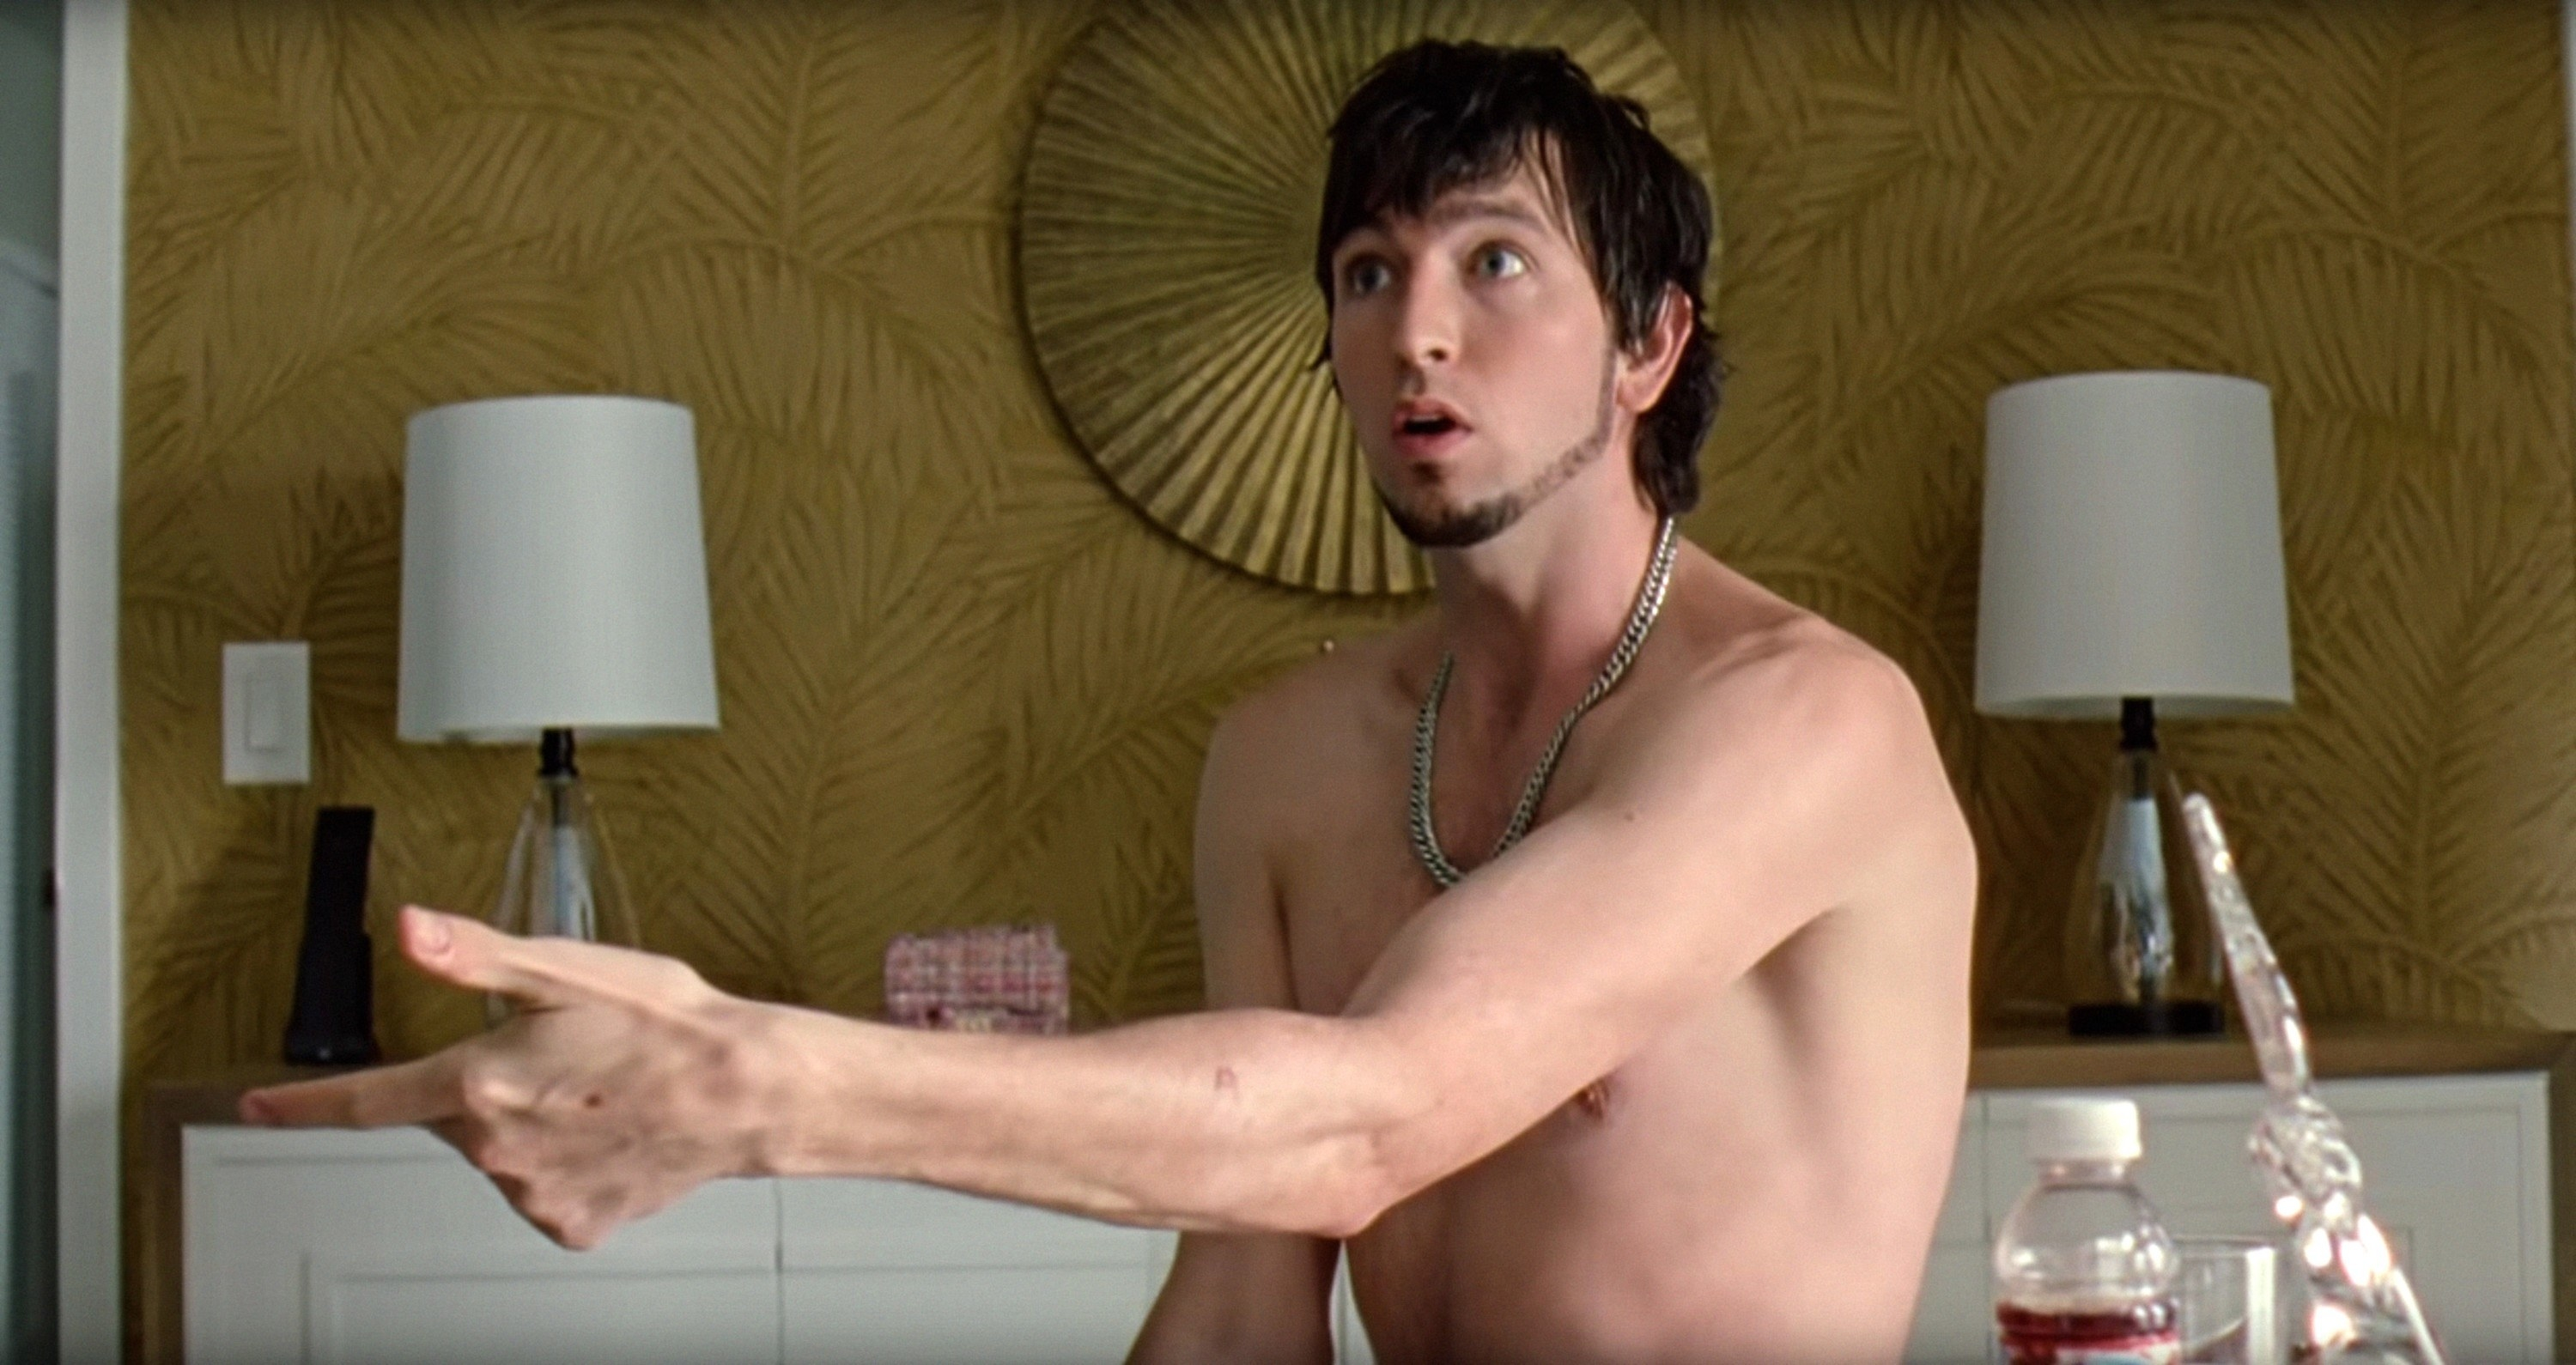 Derrek topless and sitting in a hotel room